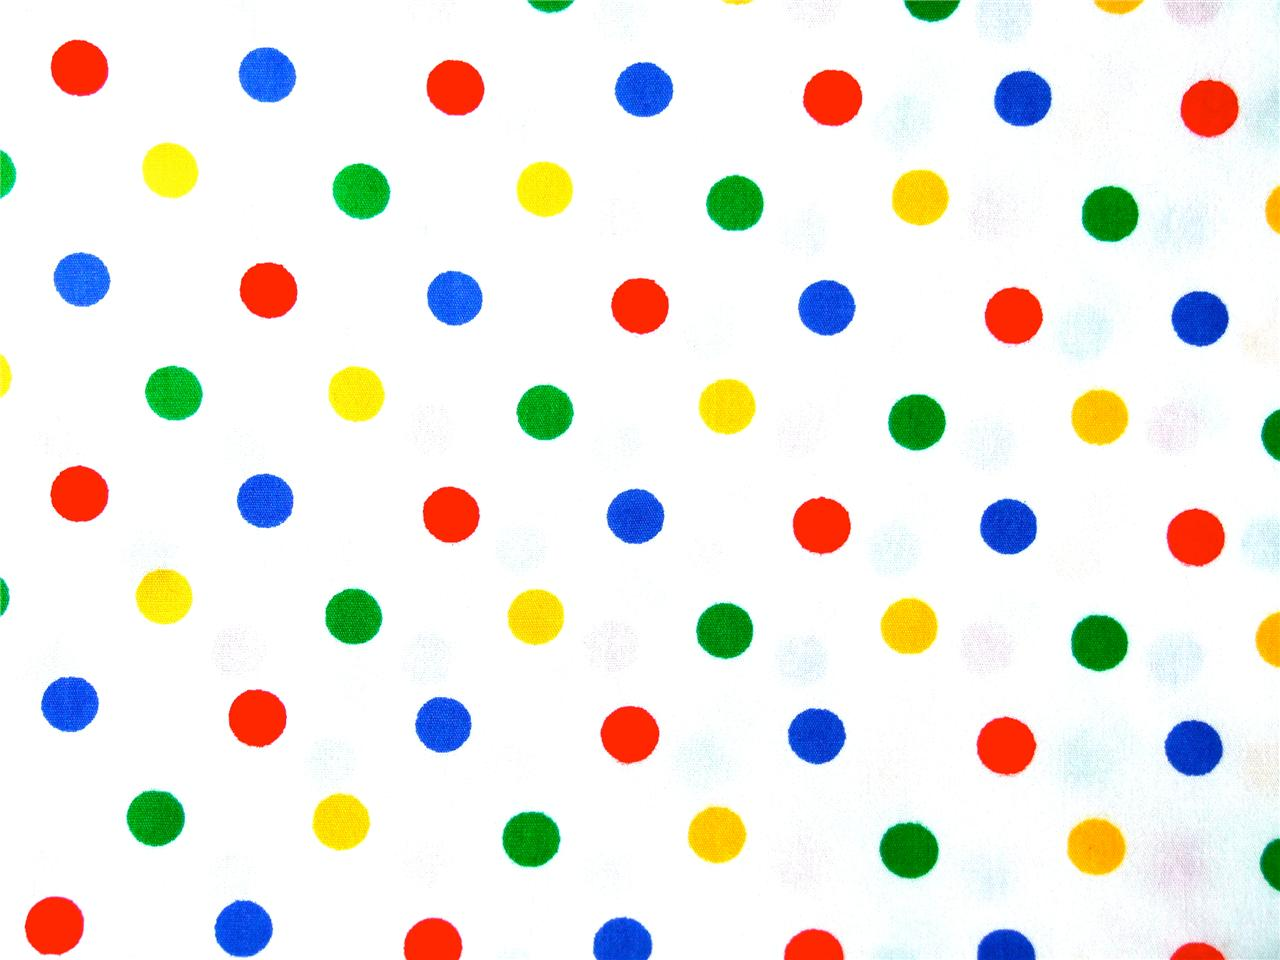 blue polka dot wallpaper uk